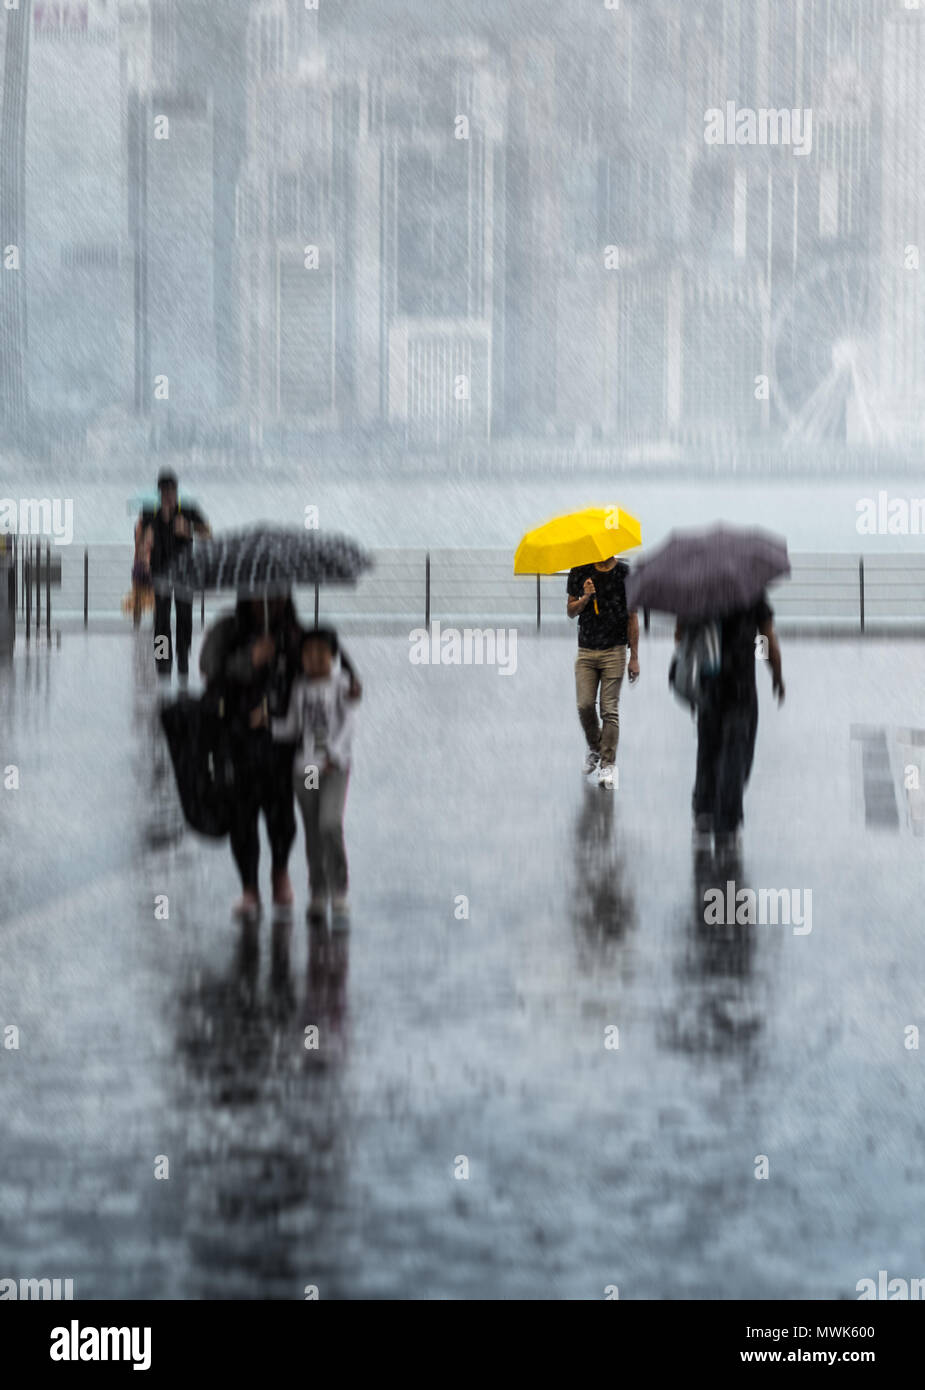 Blurred people with umbrellas walking by the street under the strong rain. Hong Kong Island in haze on background. Yellow umbrella. - Stock Image